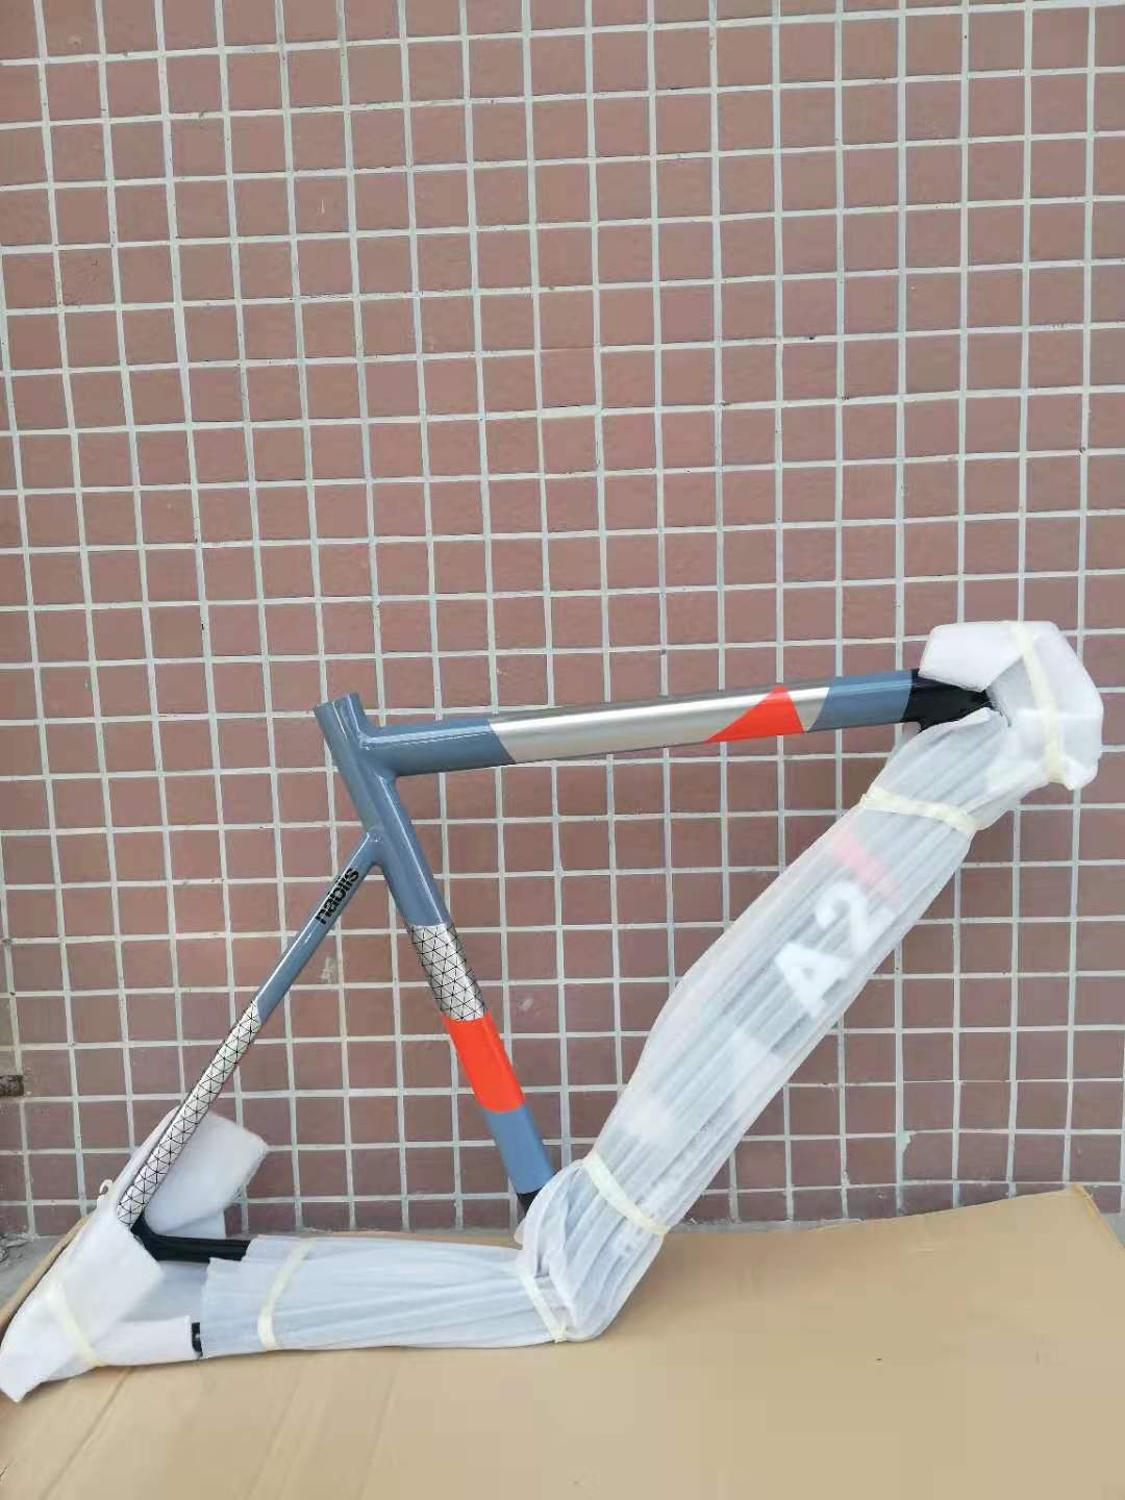 Bicycle-Parts Fork Fixed-Gear-Frame Track 700c Aluminum Last 1600g 51cm 53cm High-Quality title=